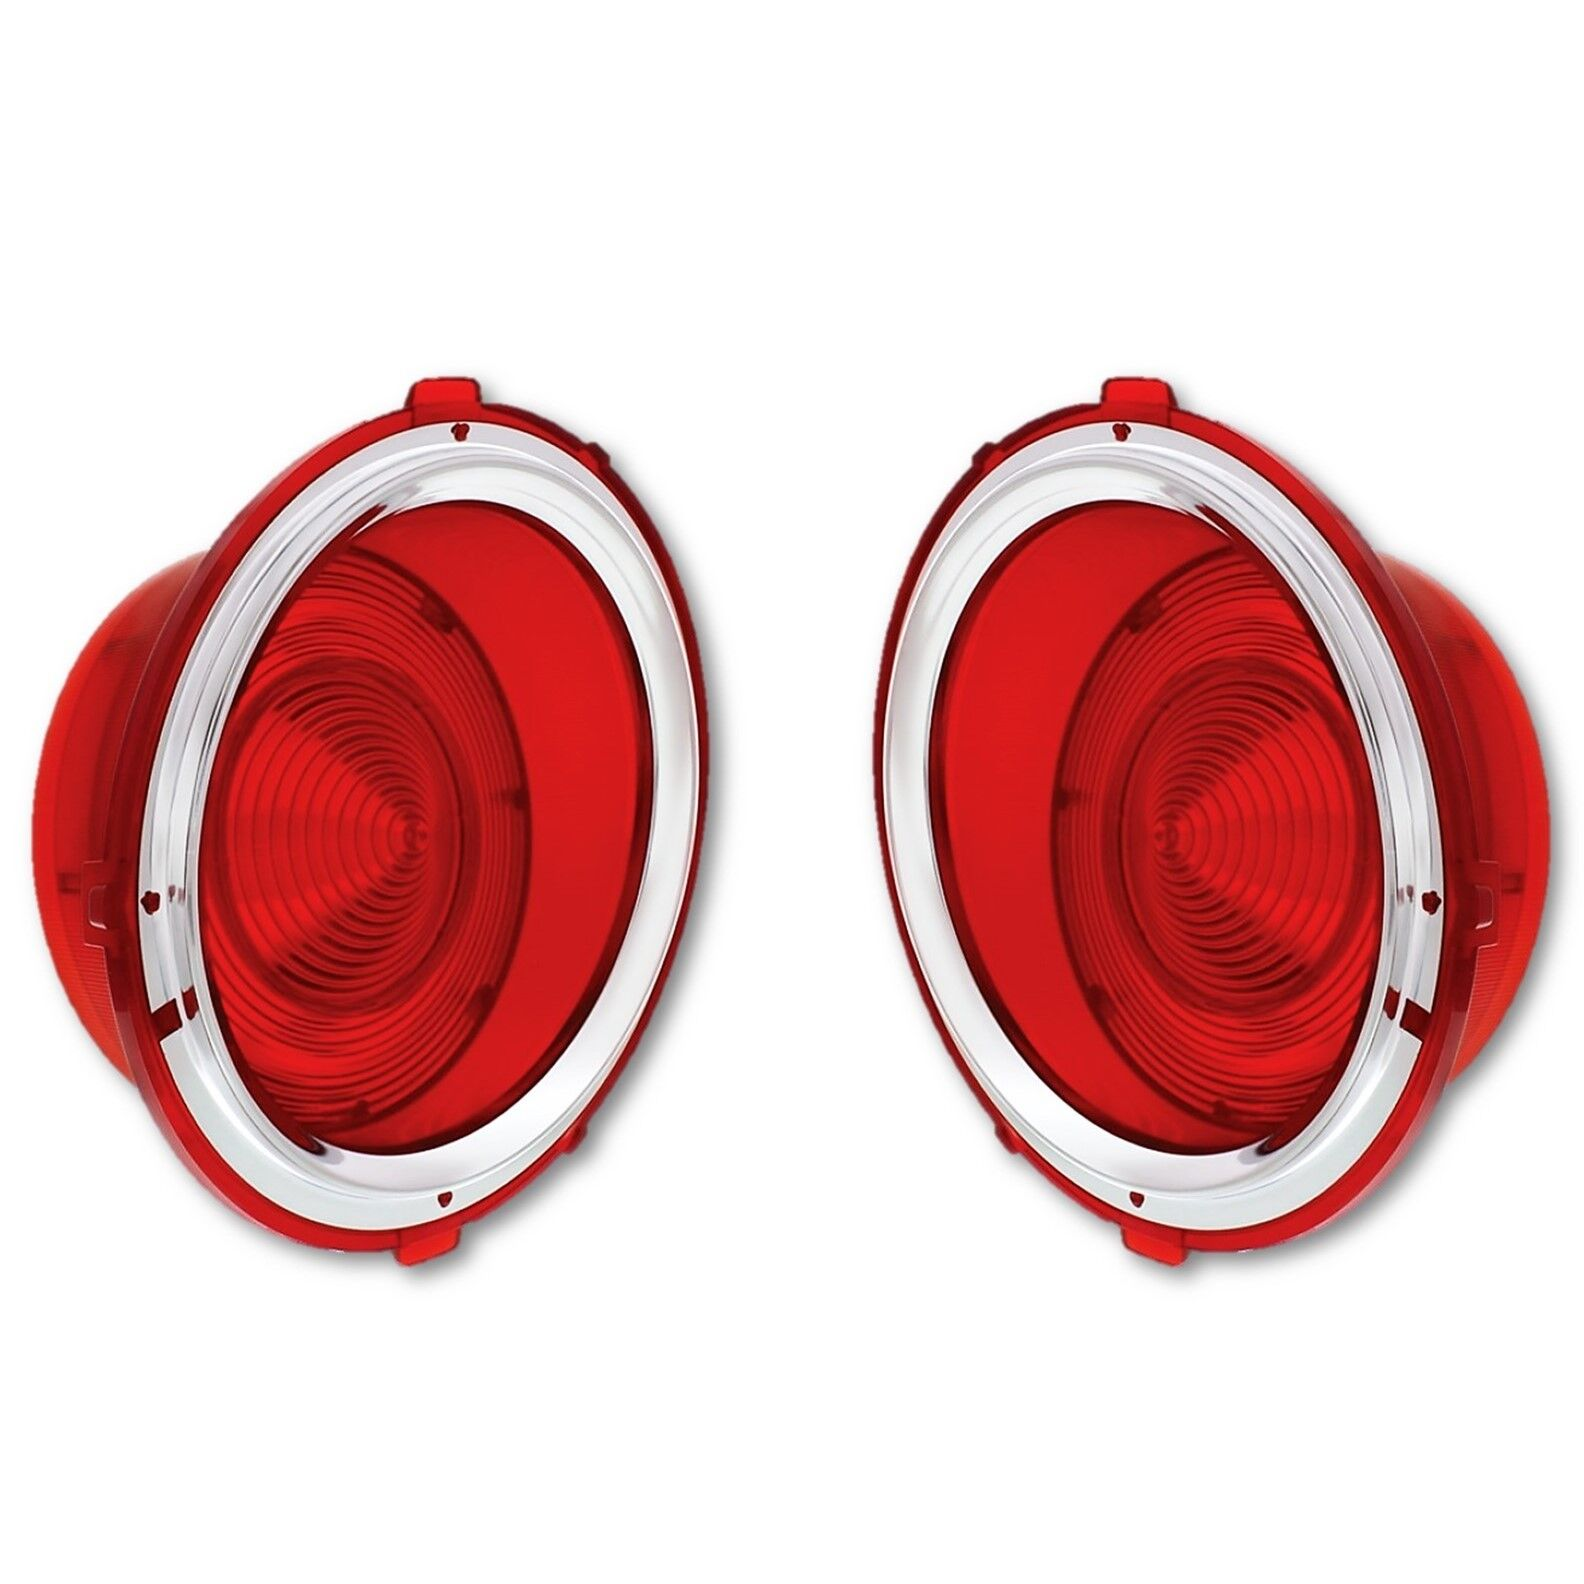 1970 1971 1972 1973 Camaro Parking Light Lens with Gaskets Pair